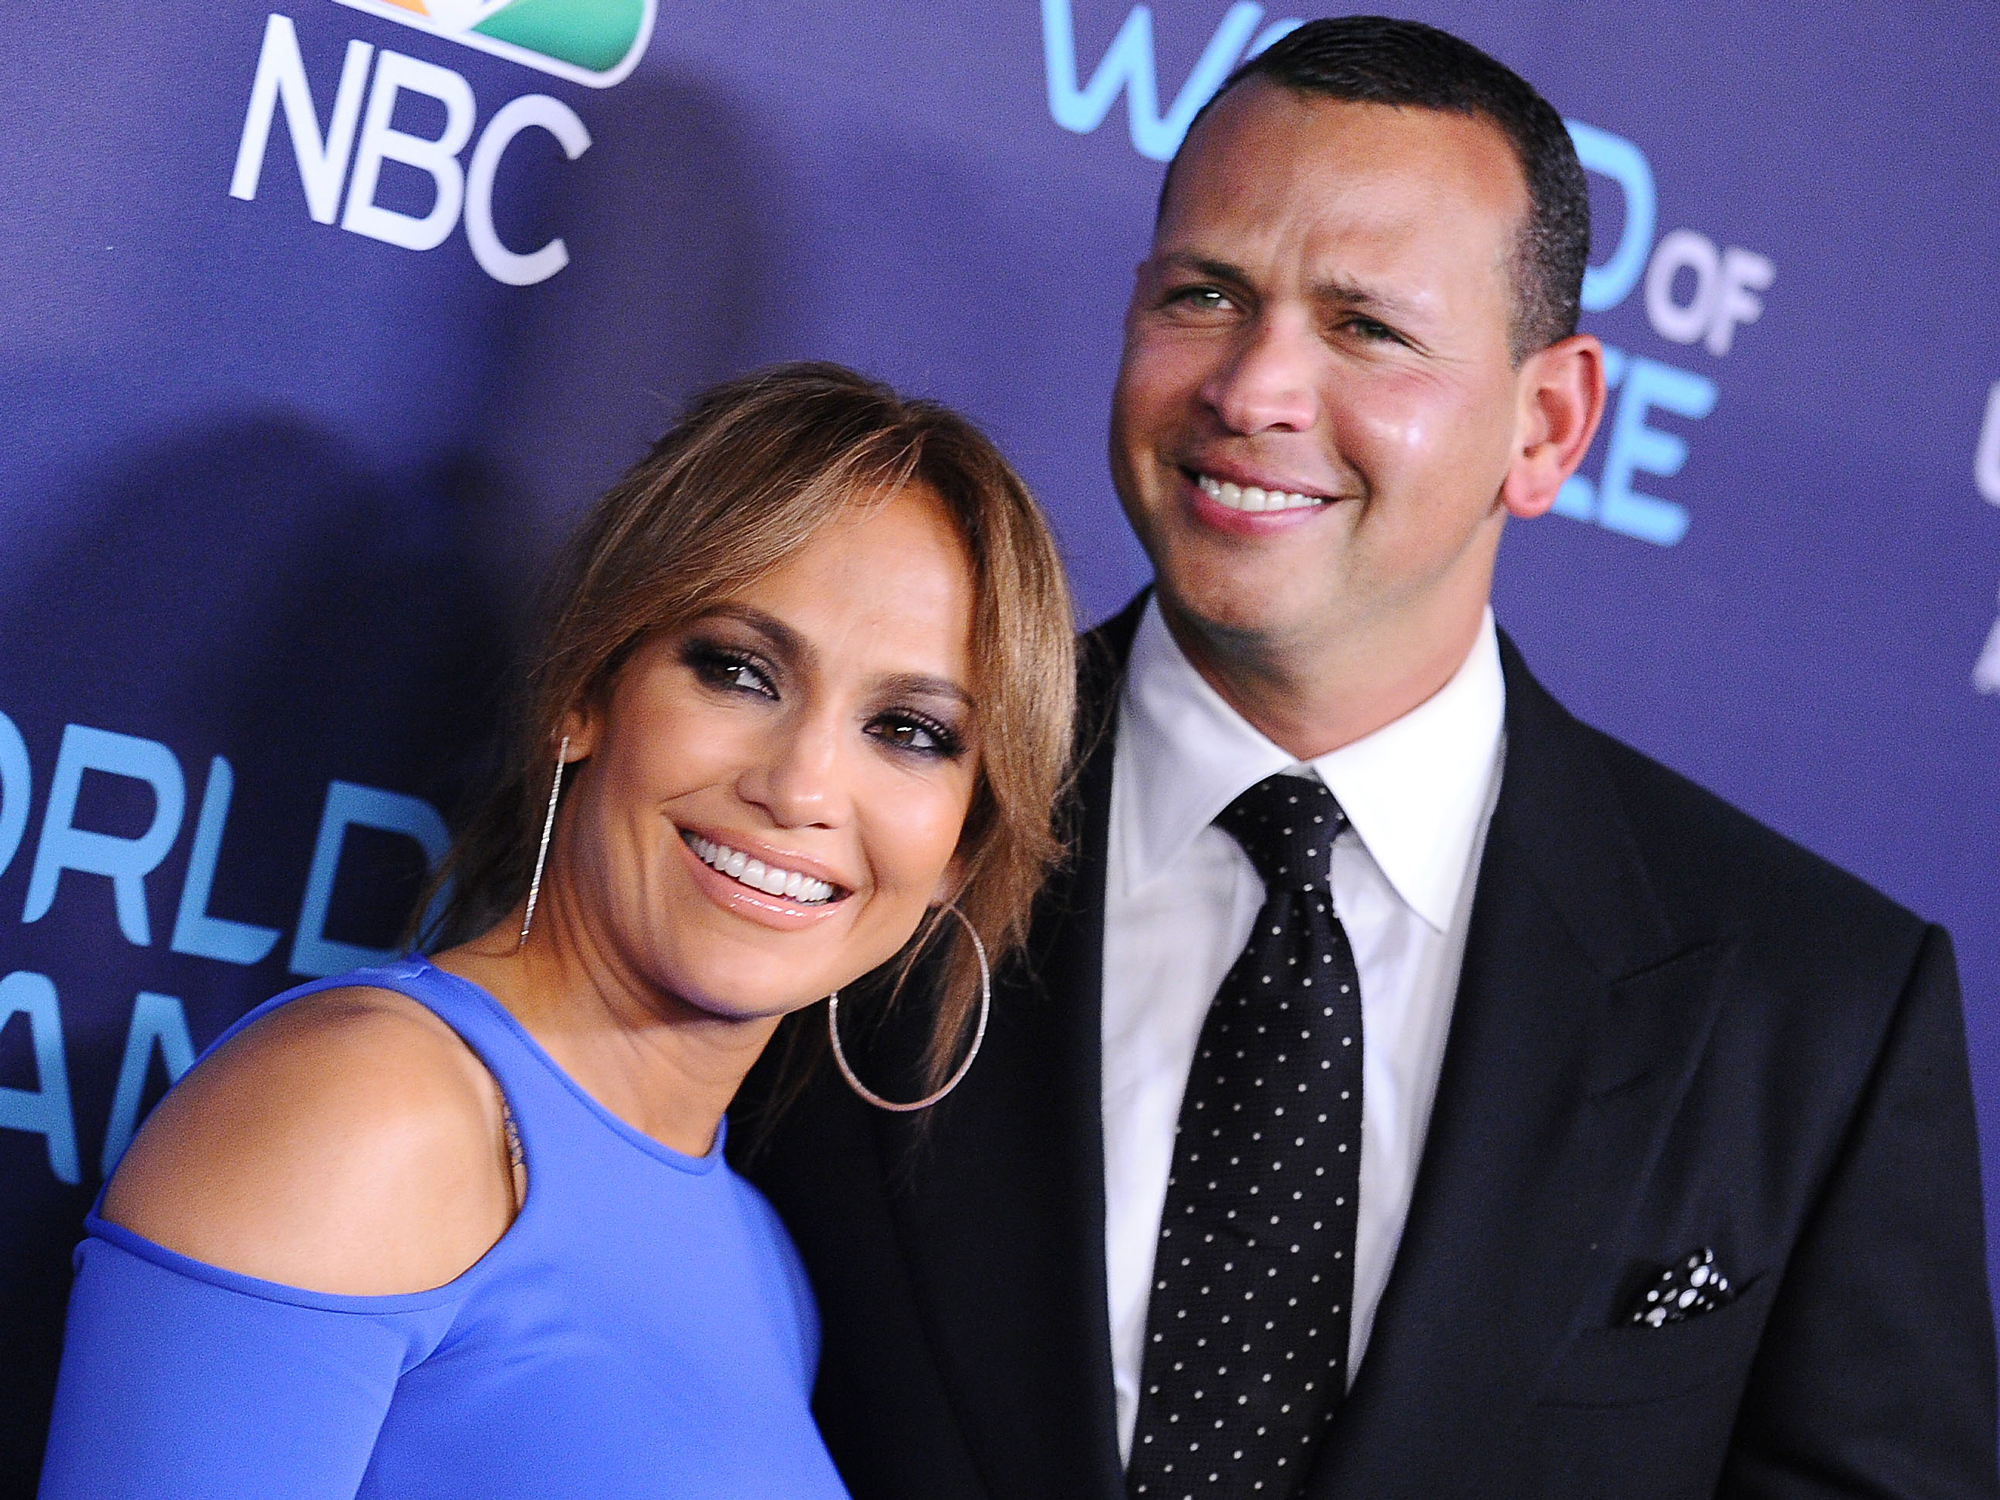 A-Rod Is Being Accused of Cheating on J.Lo with a Playboy Model Right Before Their Engagement